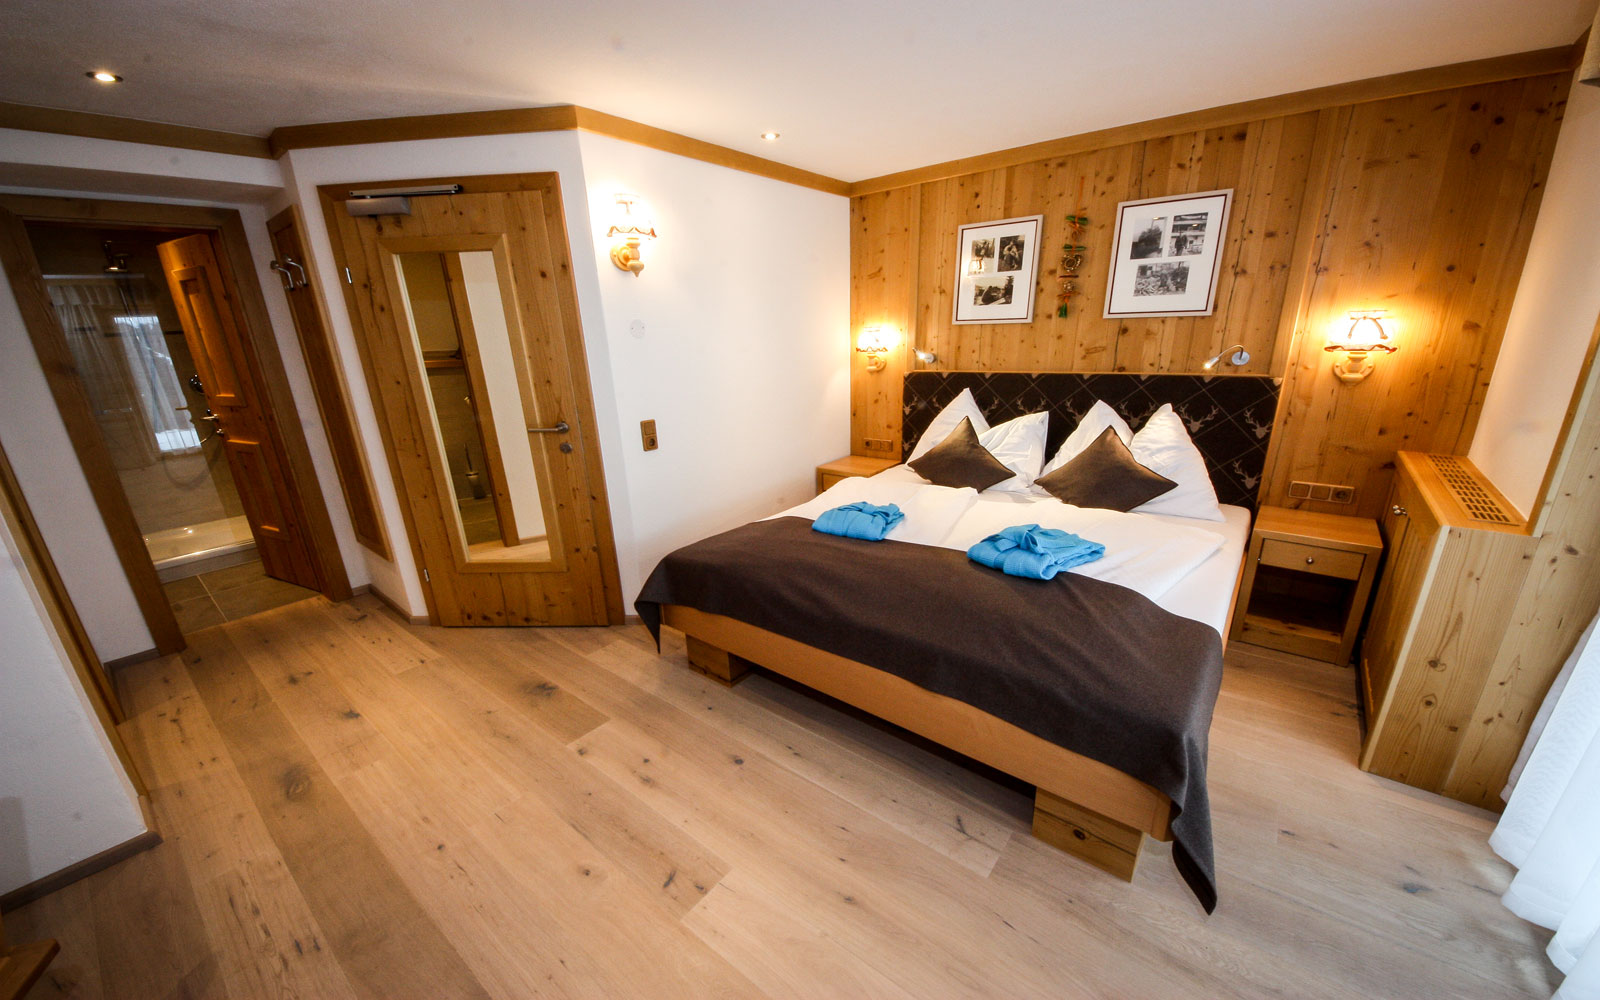 https://www.talheim.at/saalbach-hinterglemm/hotel-pension/wp-content/bilder/studio-9.jpg